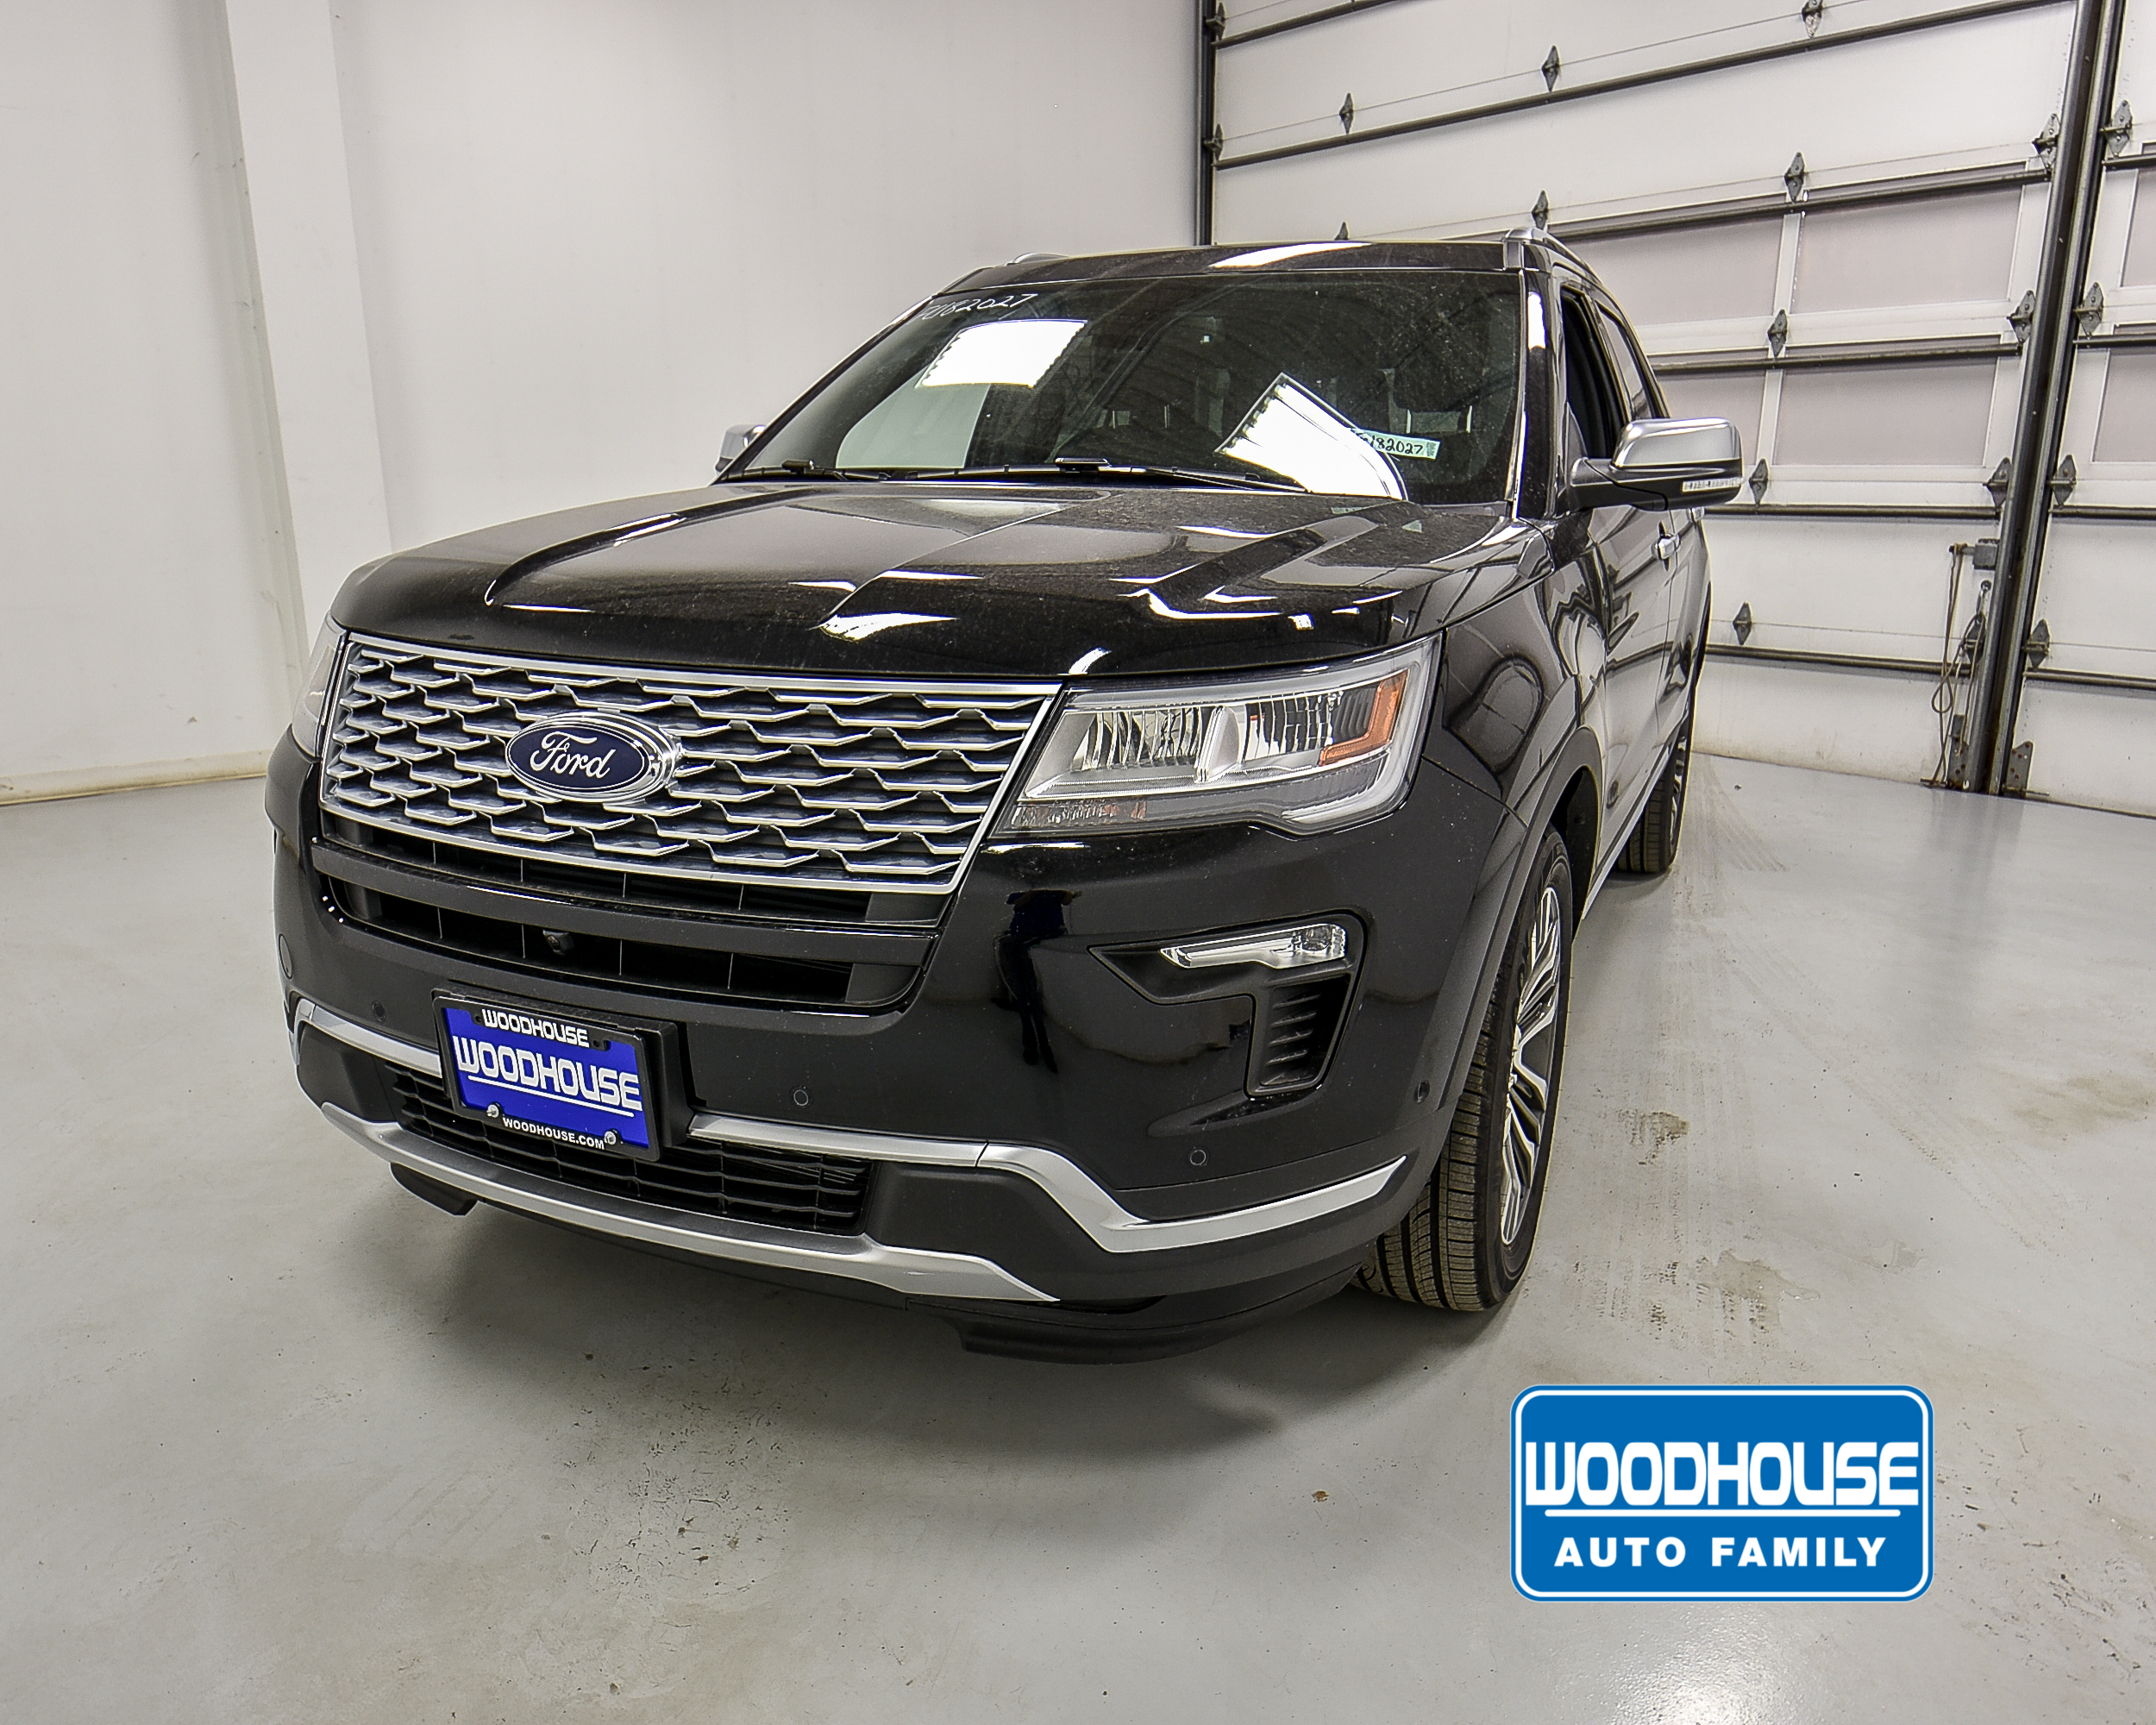 Woodhouse | New 12 Ford Explorer For Sale | Ford (Omaha) | woodhouse ford